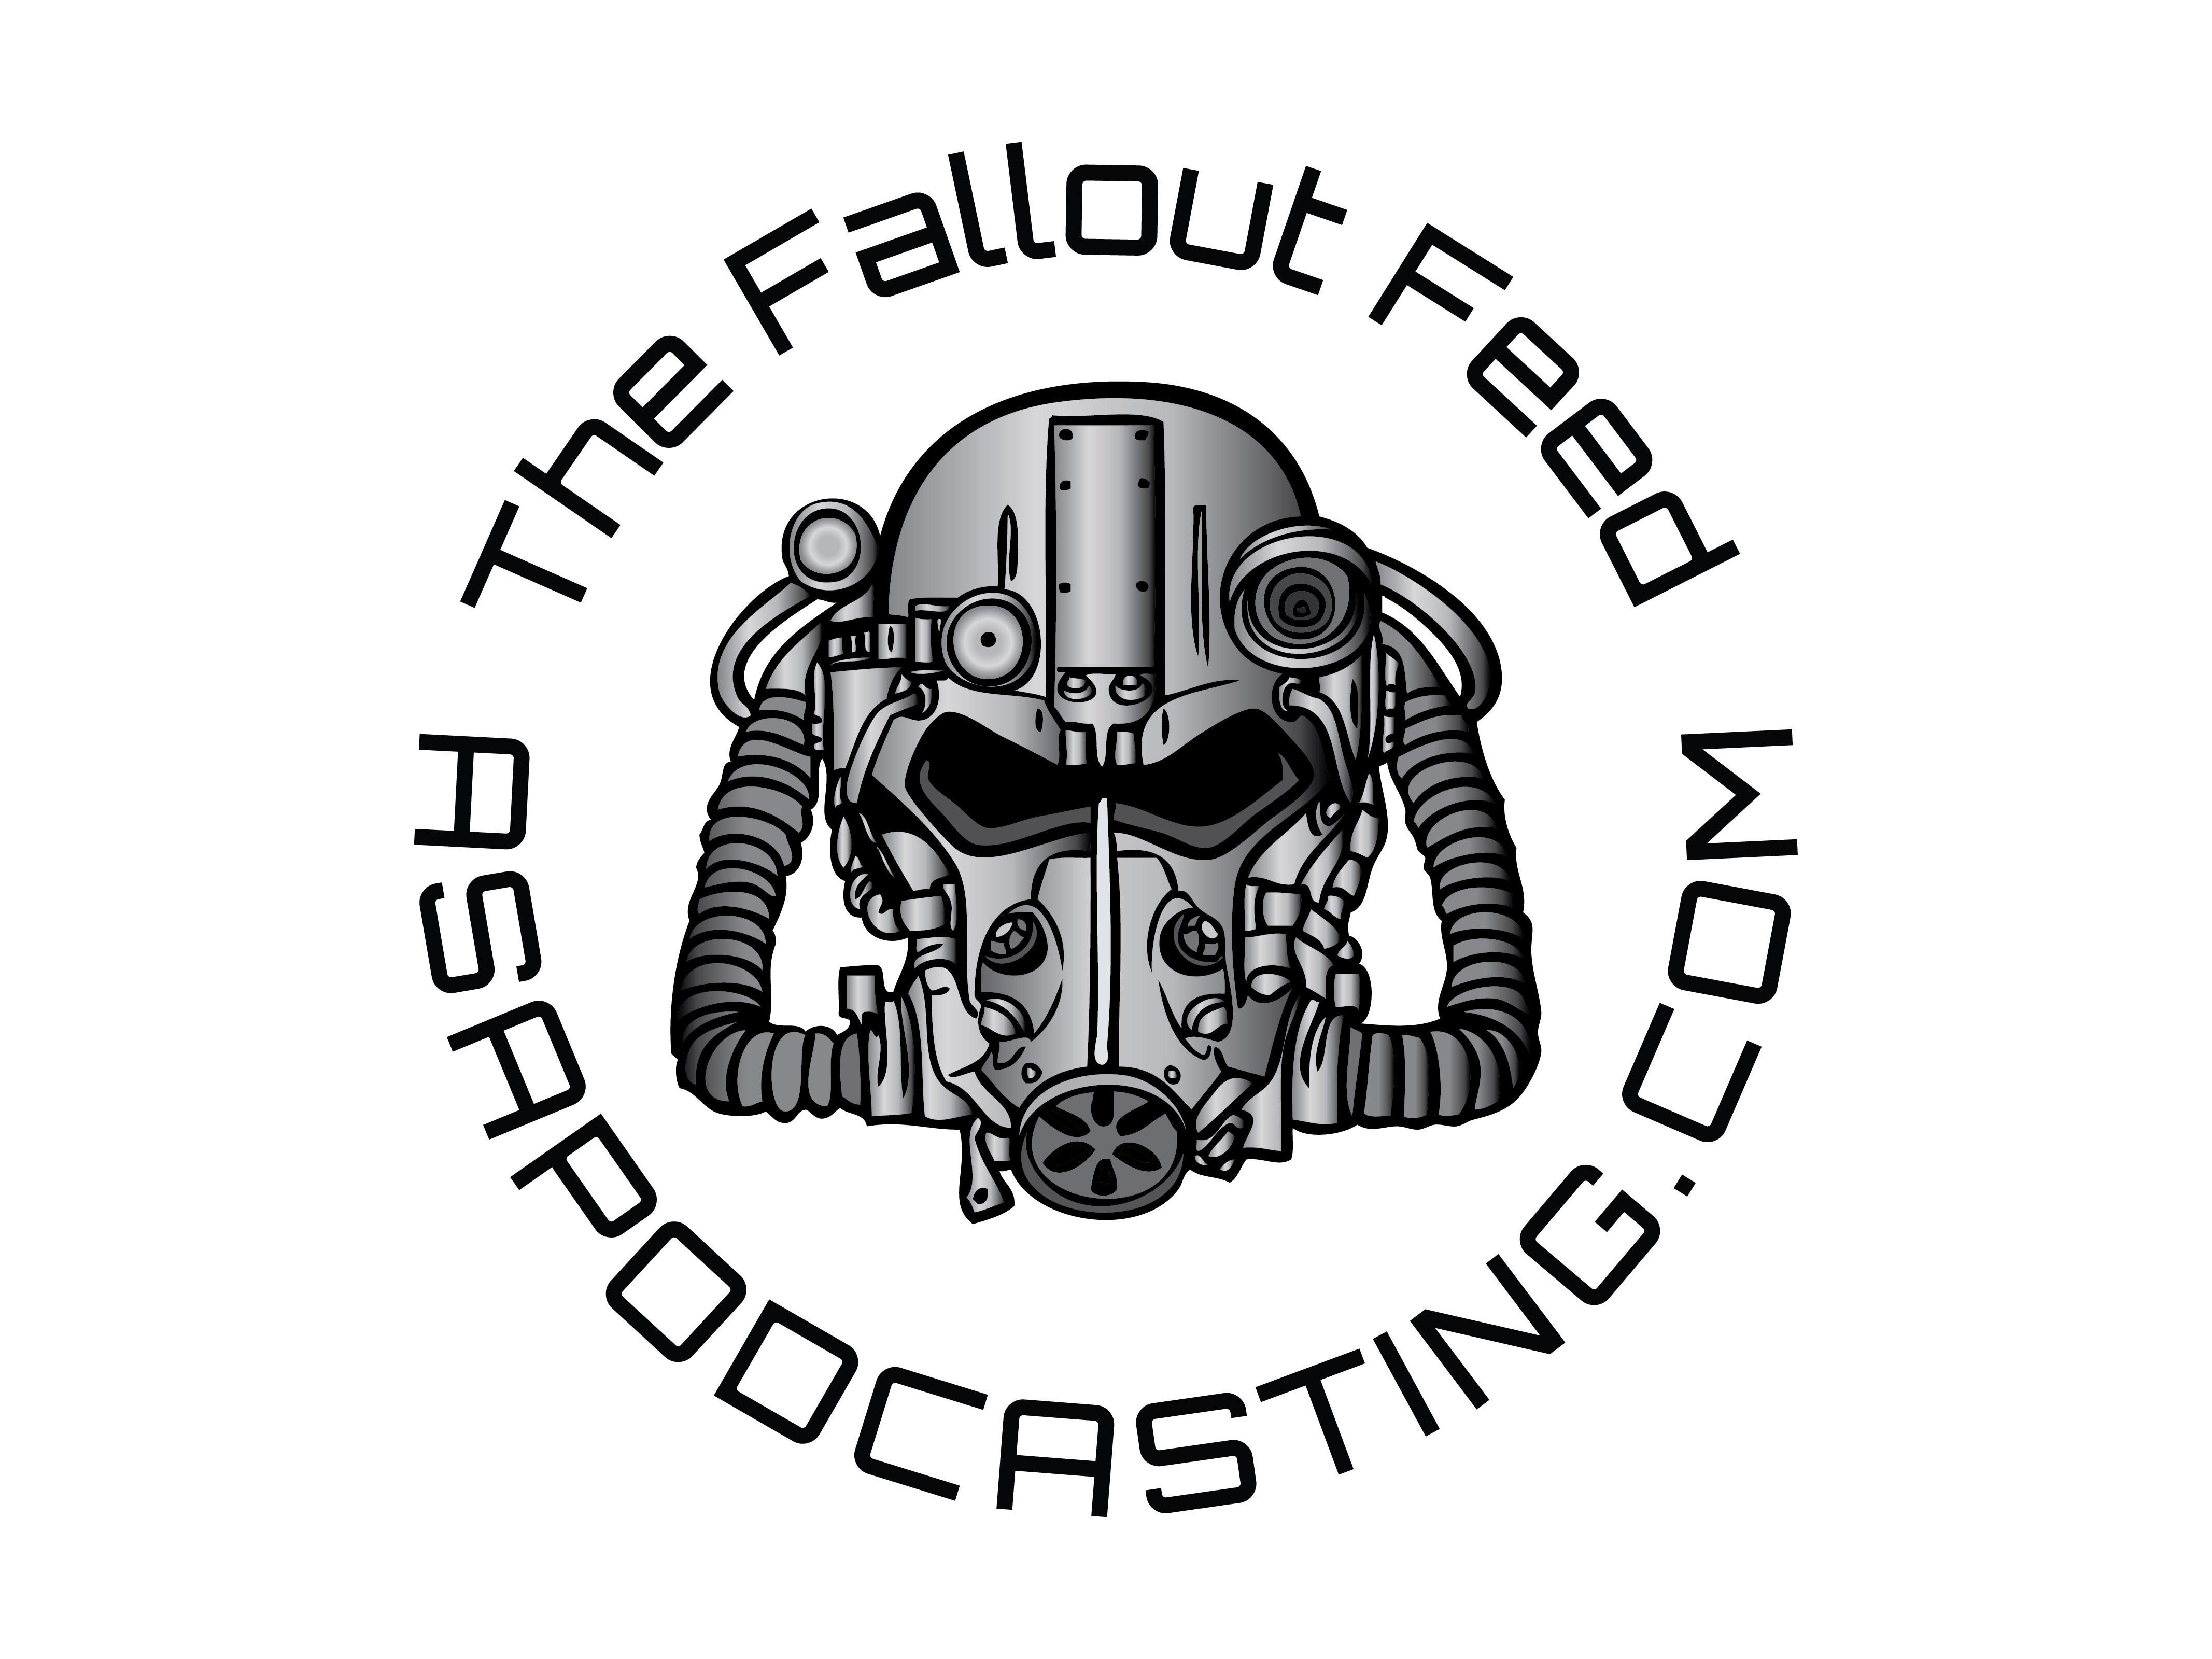 The Fallout Feed: A Fallout 4 podcast